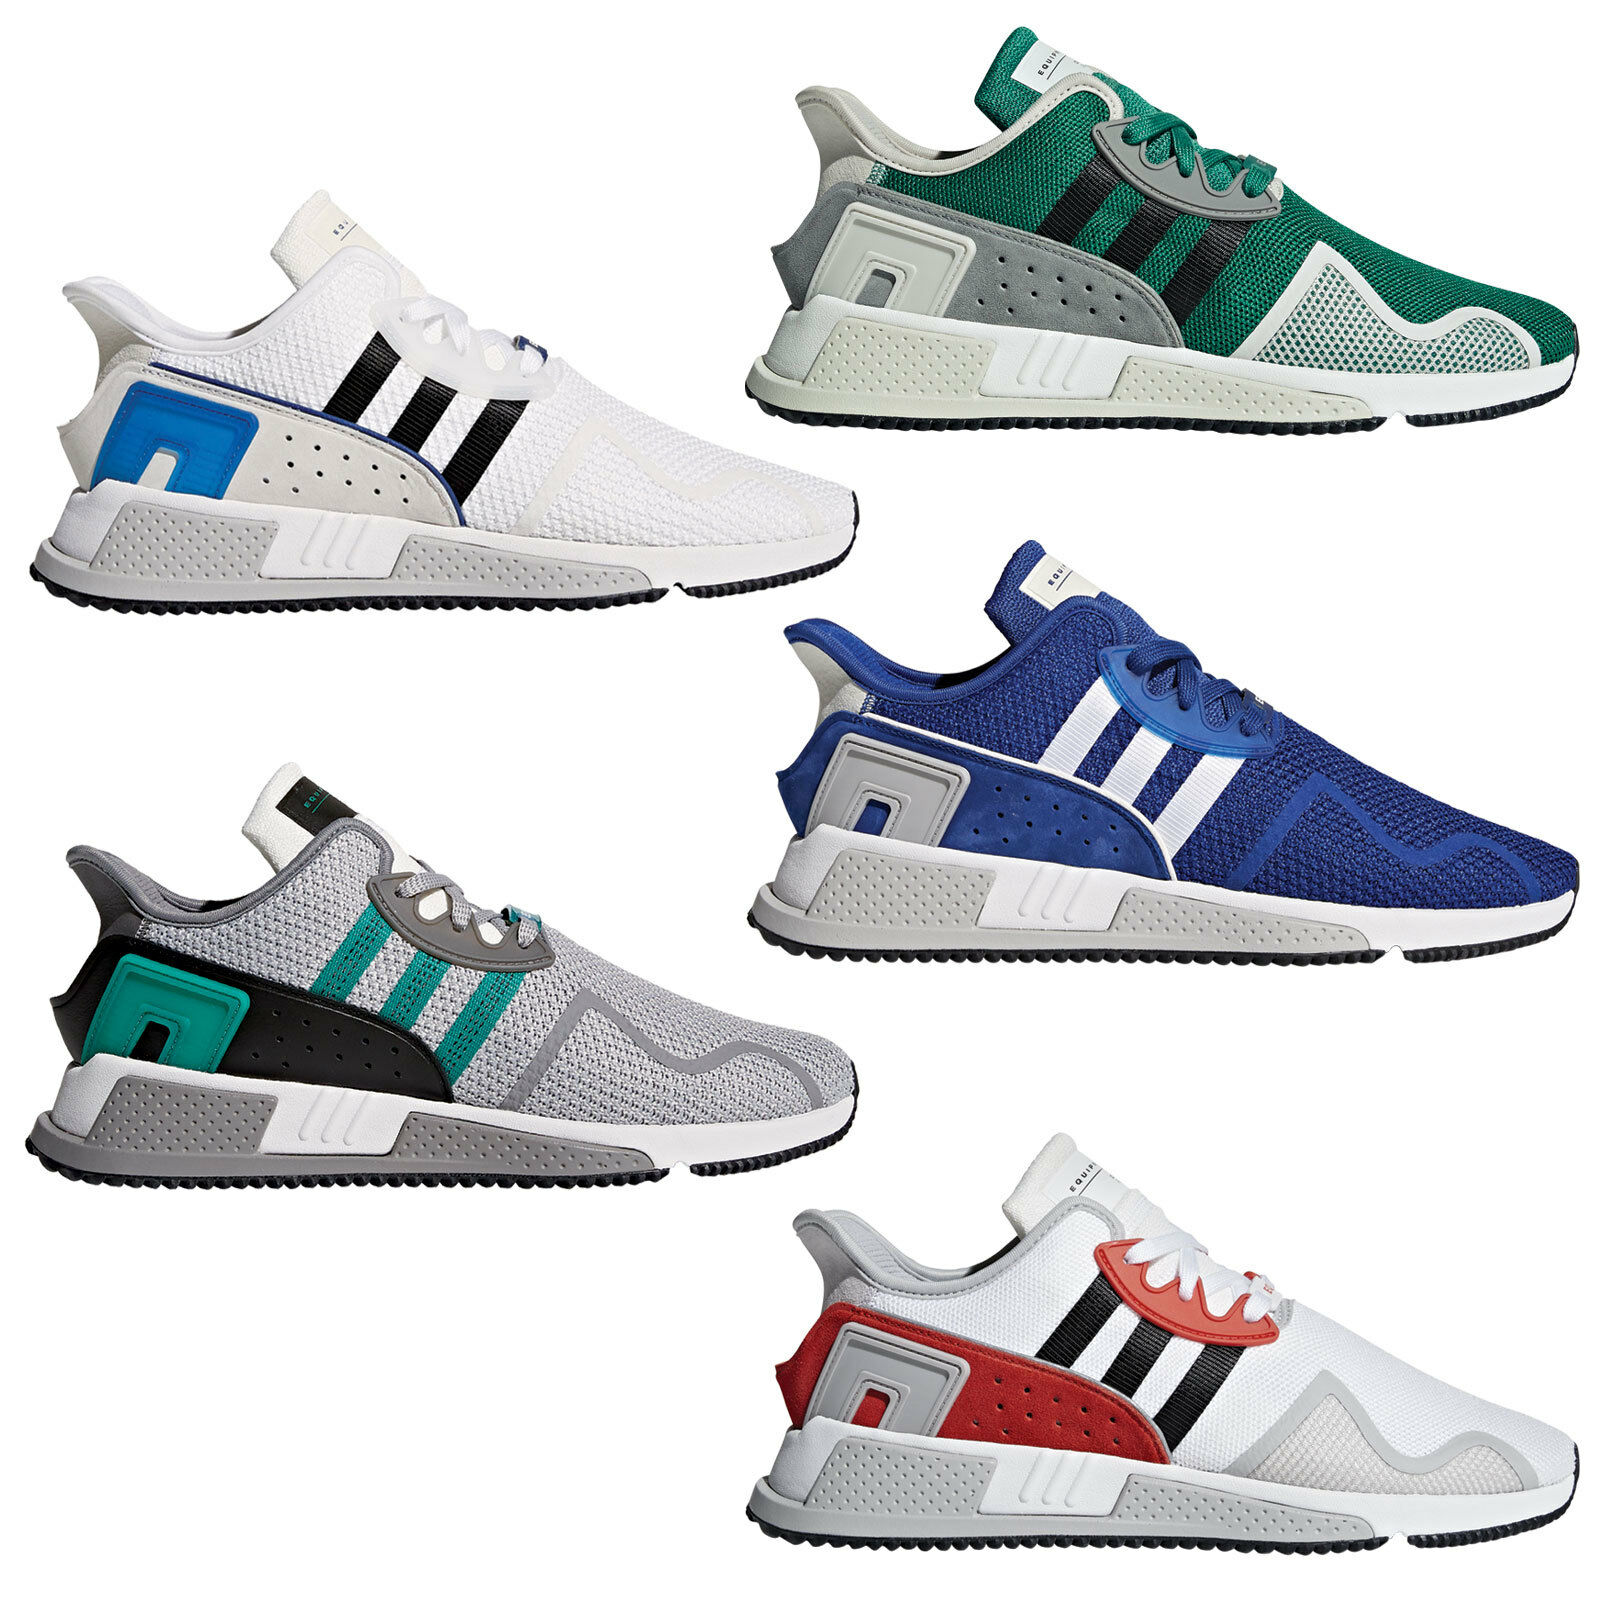 Adidas Originals Equipment Cushion Deporte Adv Eqt Avancé Zapatillas de Deporte Cushion Zapatos 3a19b7